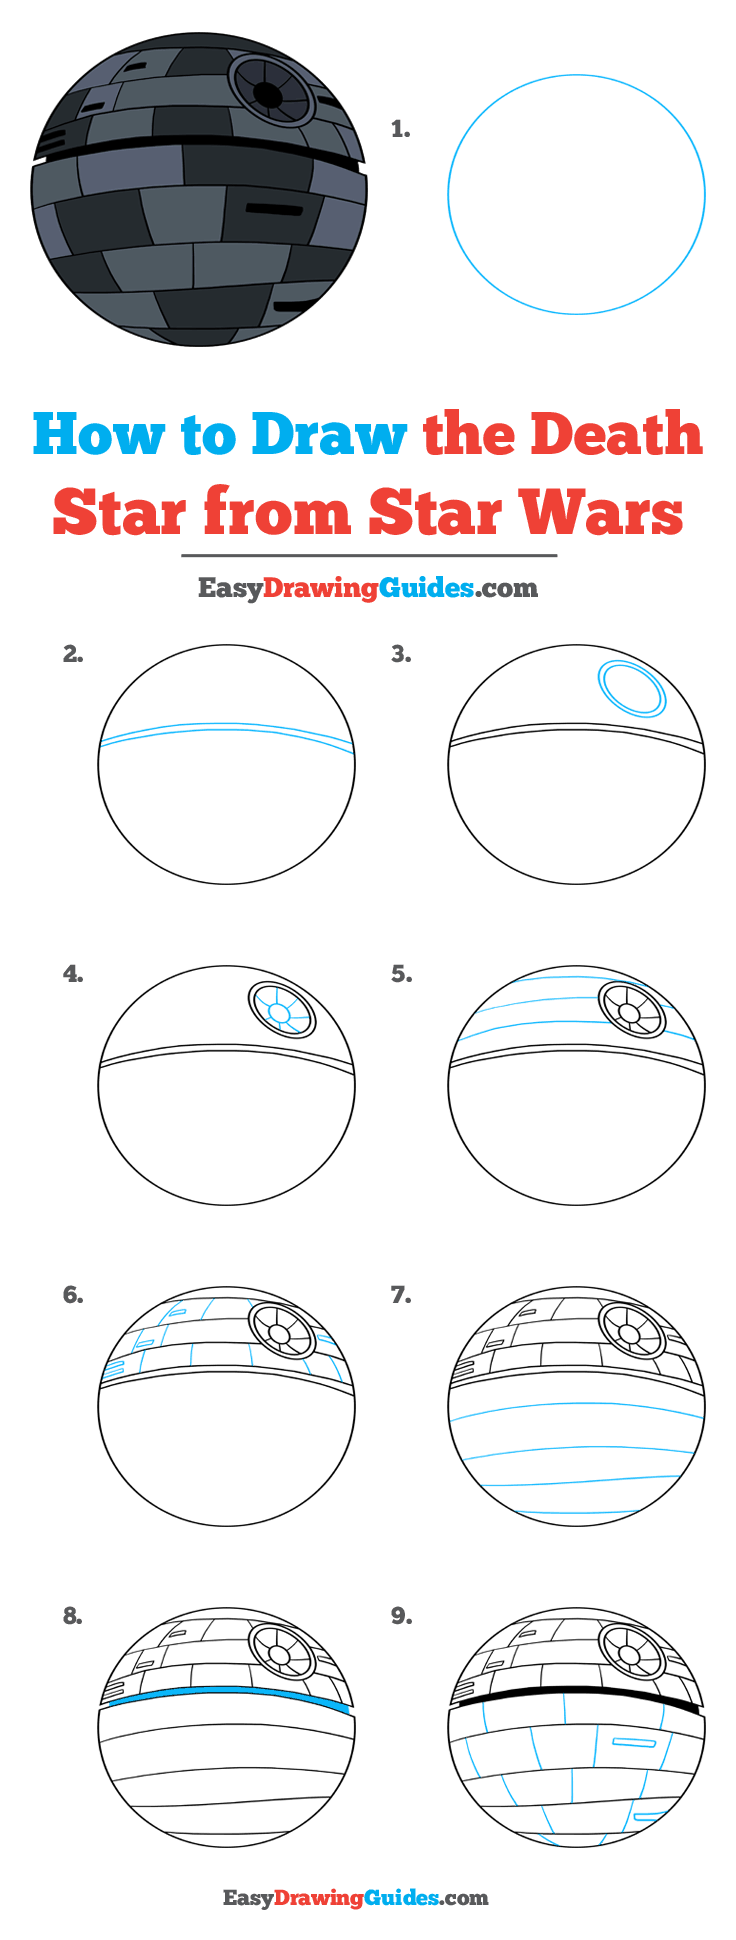 How to Draw Death Star from Star Wars